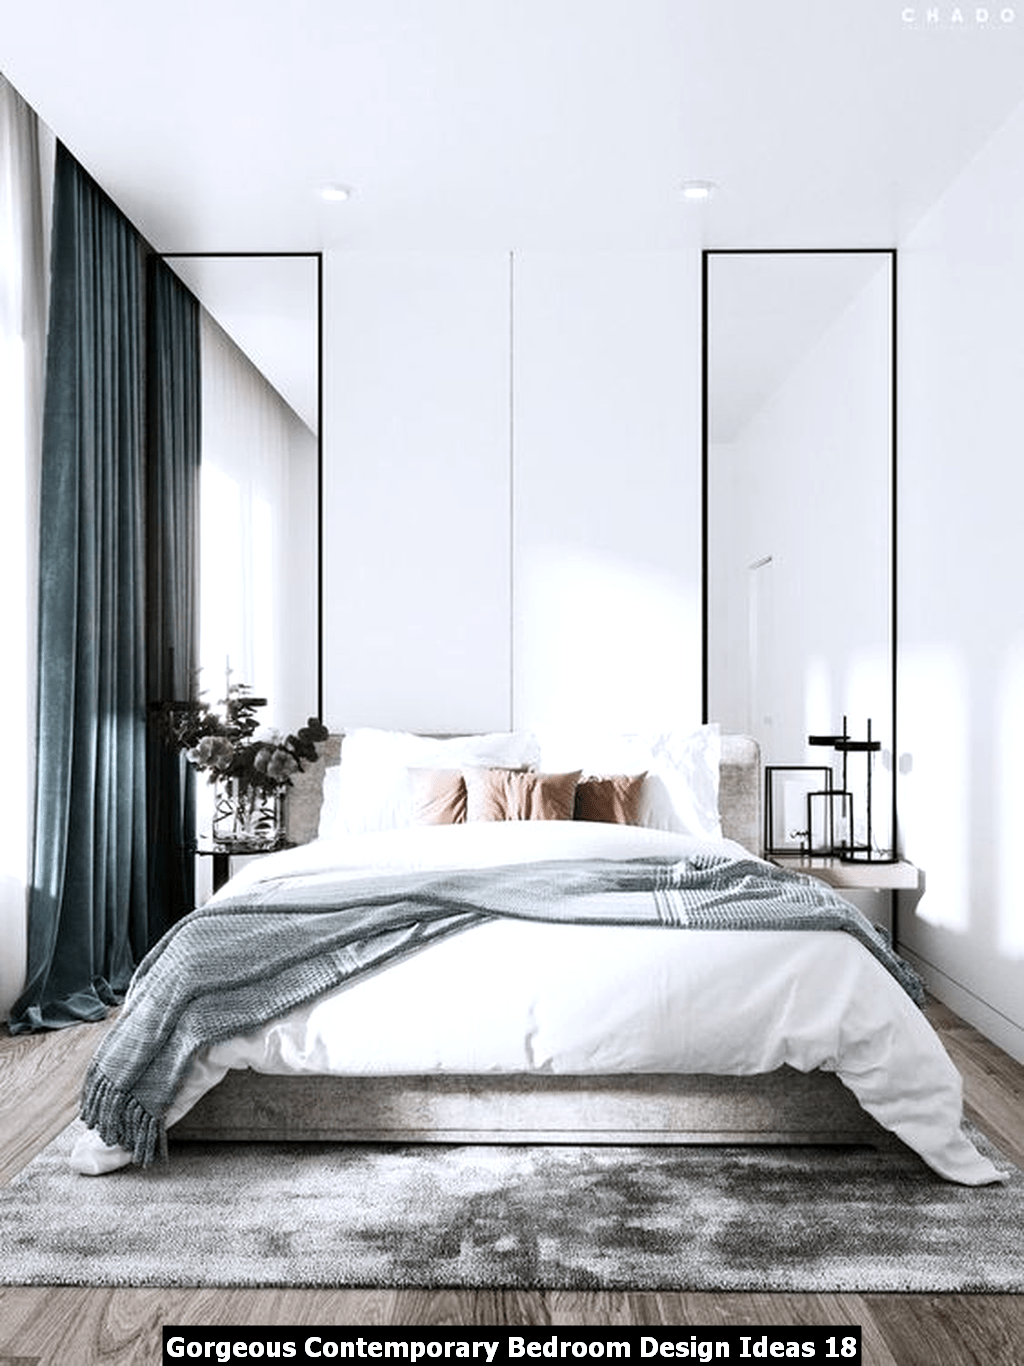 Gorgeous Contemporary Bedroom Design Ideas 18